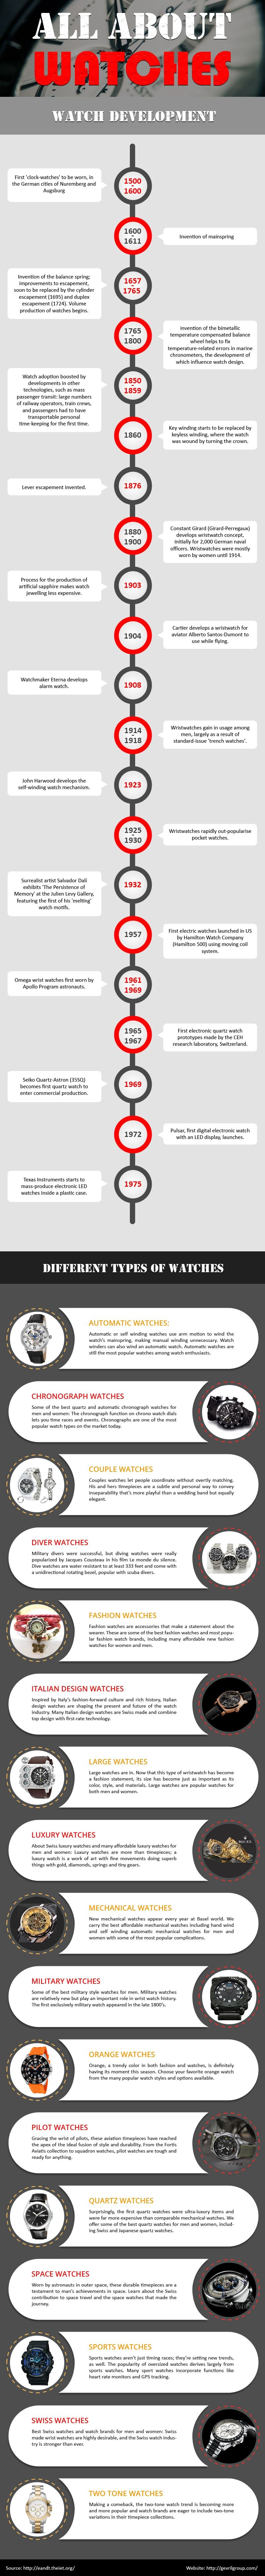 All About Watch #Infographic